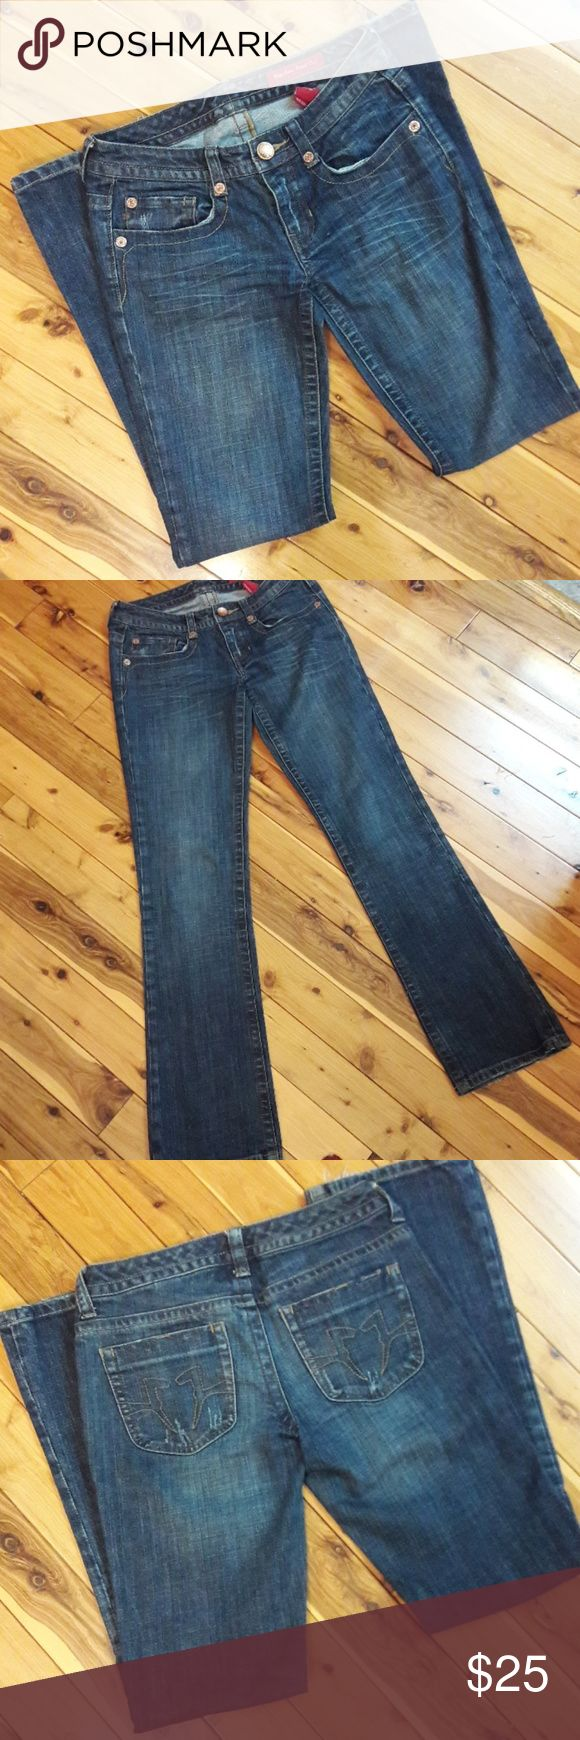 Seven7 Dark wash Bootcut Jeans, size 26 Minor wear at cuff but otherwise in great used condition.   Waist 15 Hips 17 Rise 7 Inseam 32 Length 39  Measurements are approximate and taken flat.  Please message me with any questions. A portion of sales are going toward disaster relief. Thank you. Seven7 Jeans Boot Cut